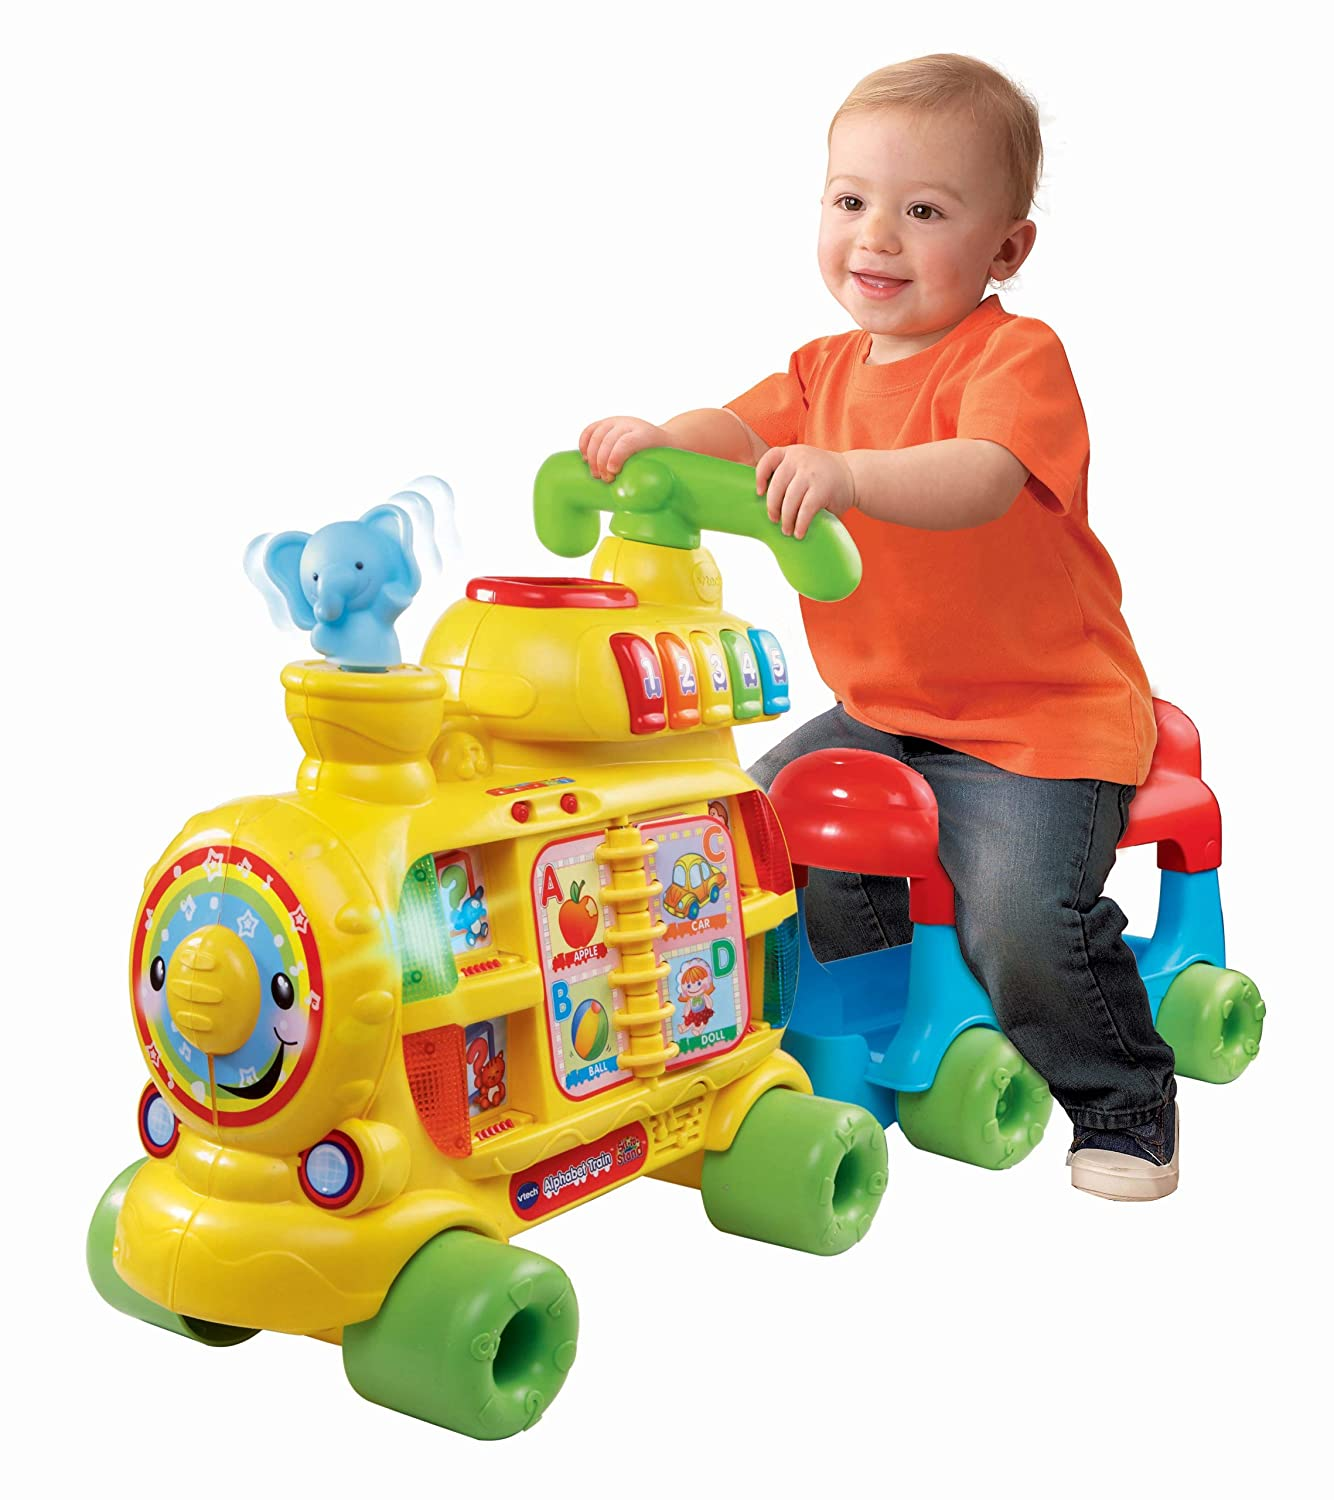 Ride On Toys For Toddlers : Walker ride on train alphabet vtech sit to stand new learn